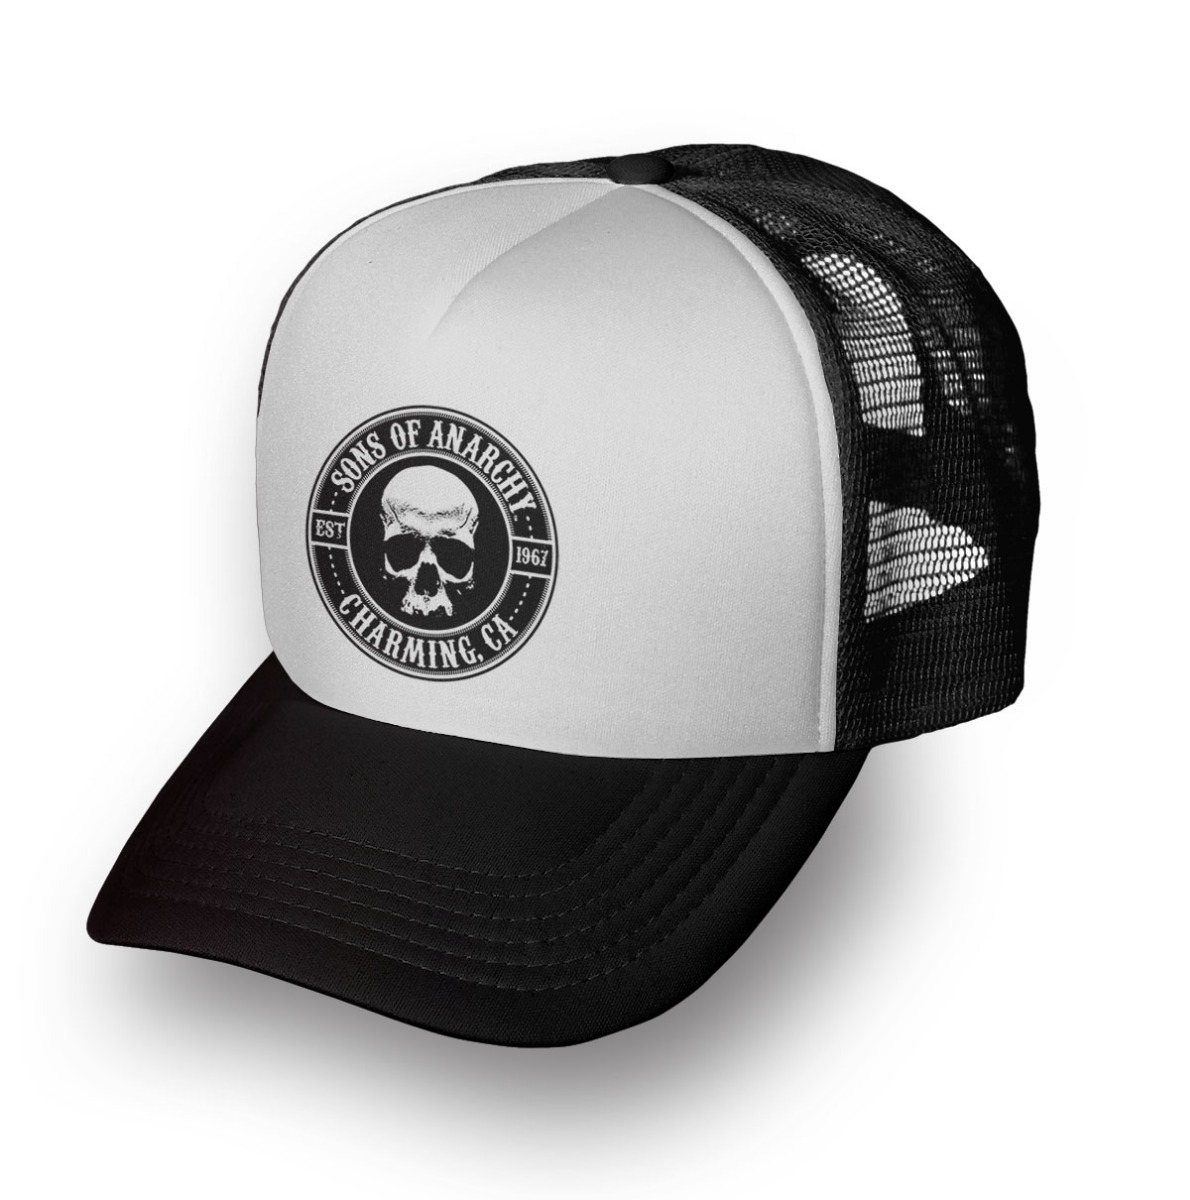 Gorra Trucker Samcro Sons Of Anarchy Netflix Serie -   249 43464b147a2